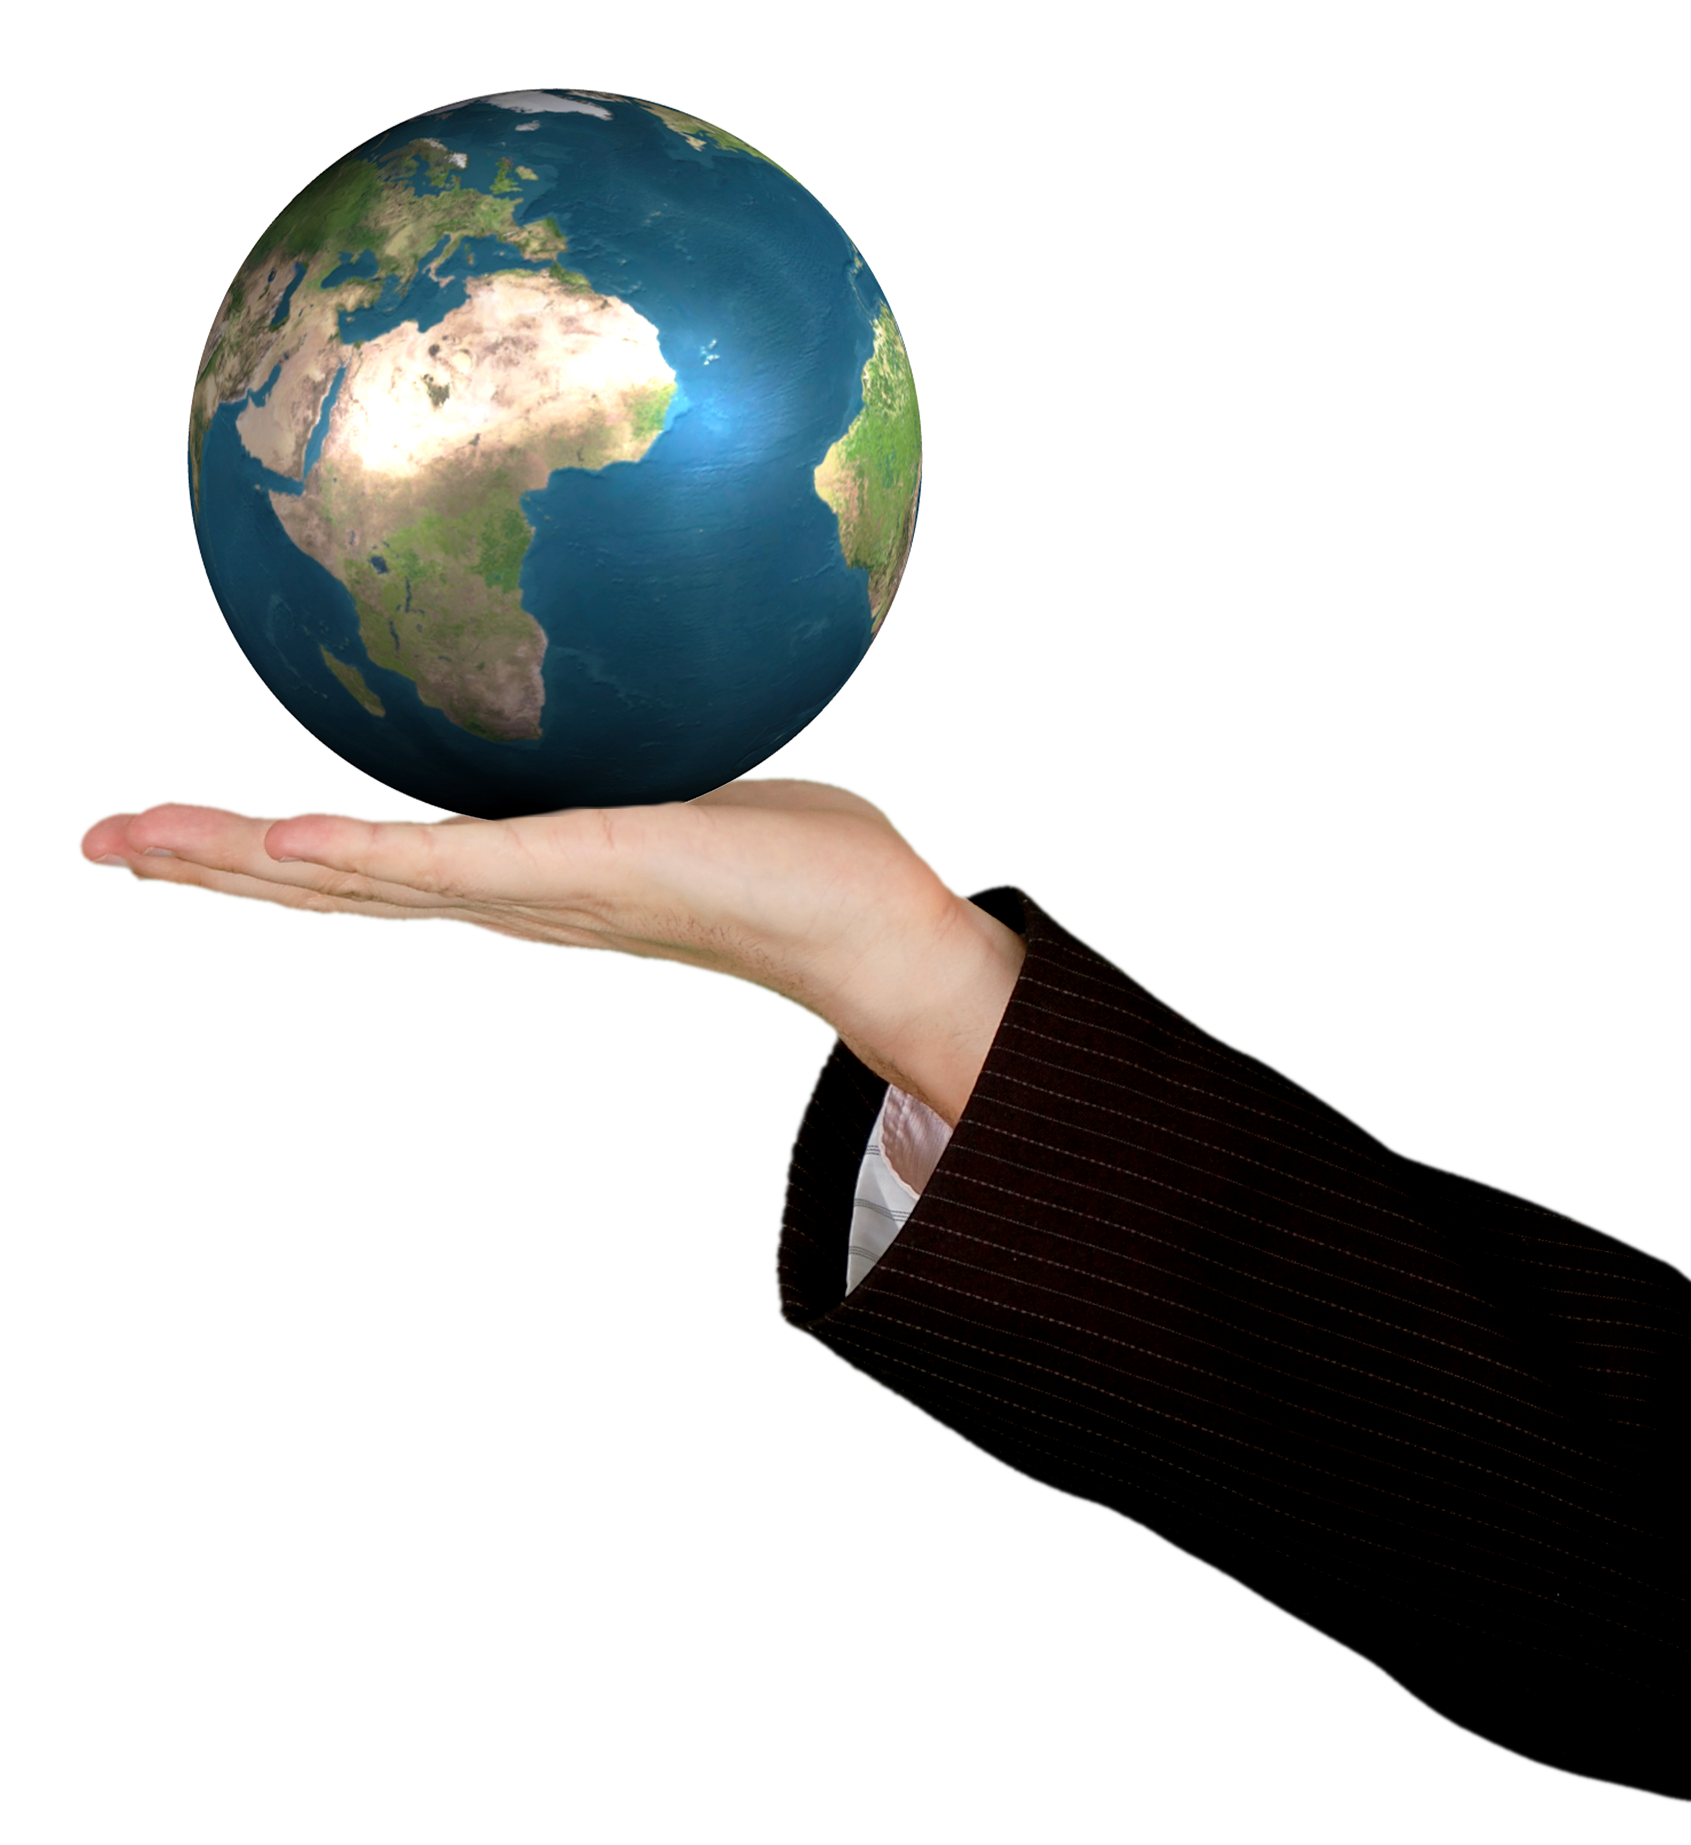 Business Woman Holding The World PNG Image